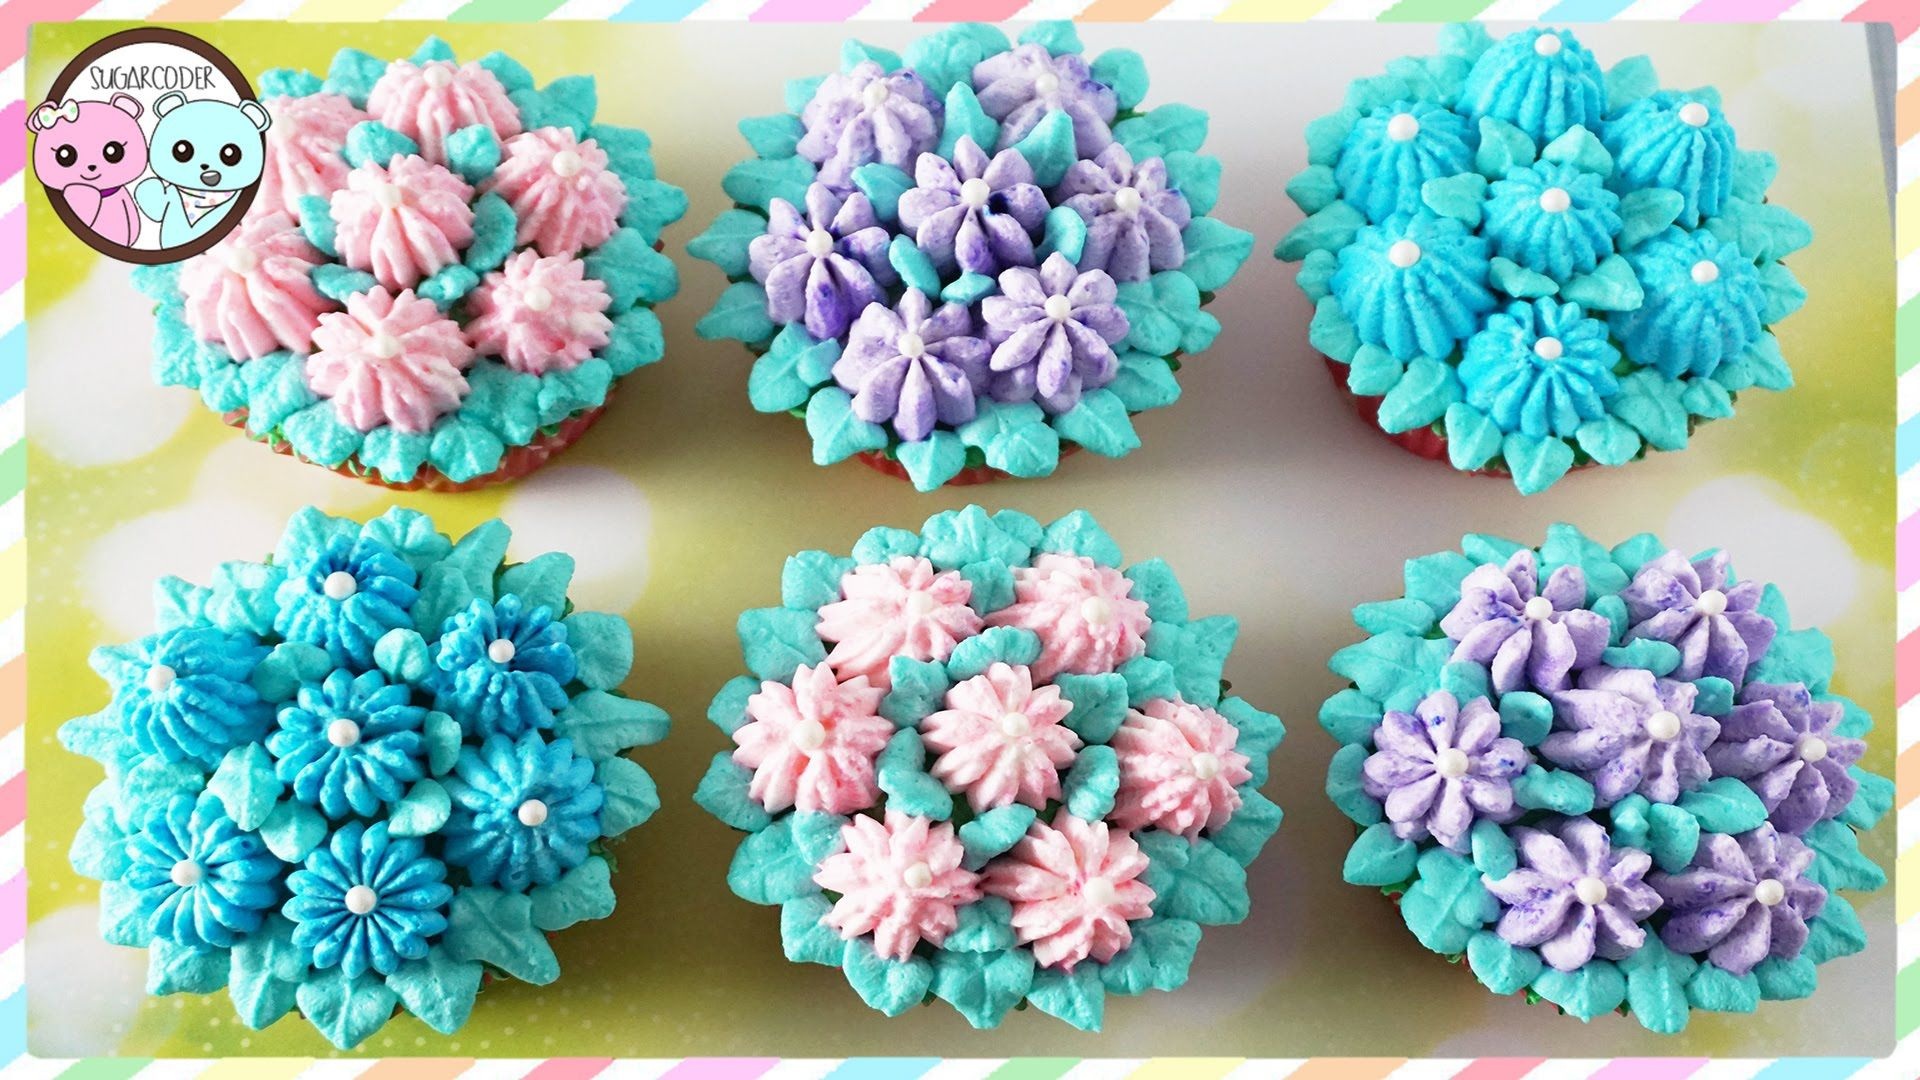 Cake Decorating Piping Flowers : RUSSIAN PIPING TIPS: FLOWER CUPCAKES, FLOWER CAKE ...